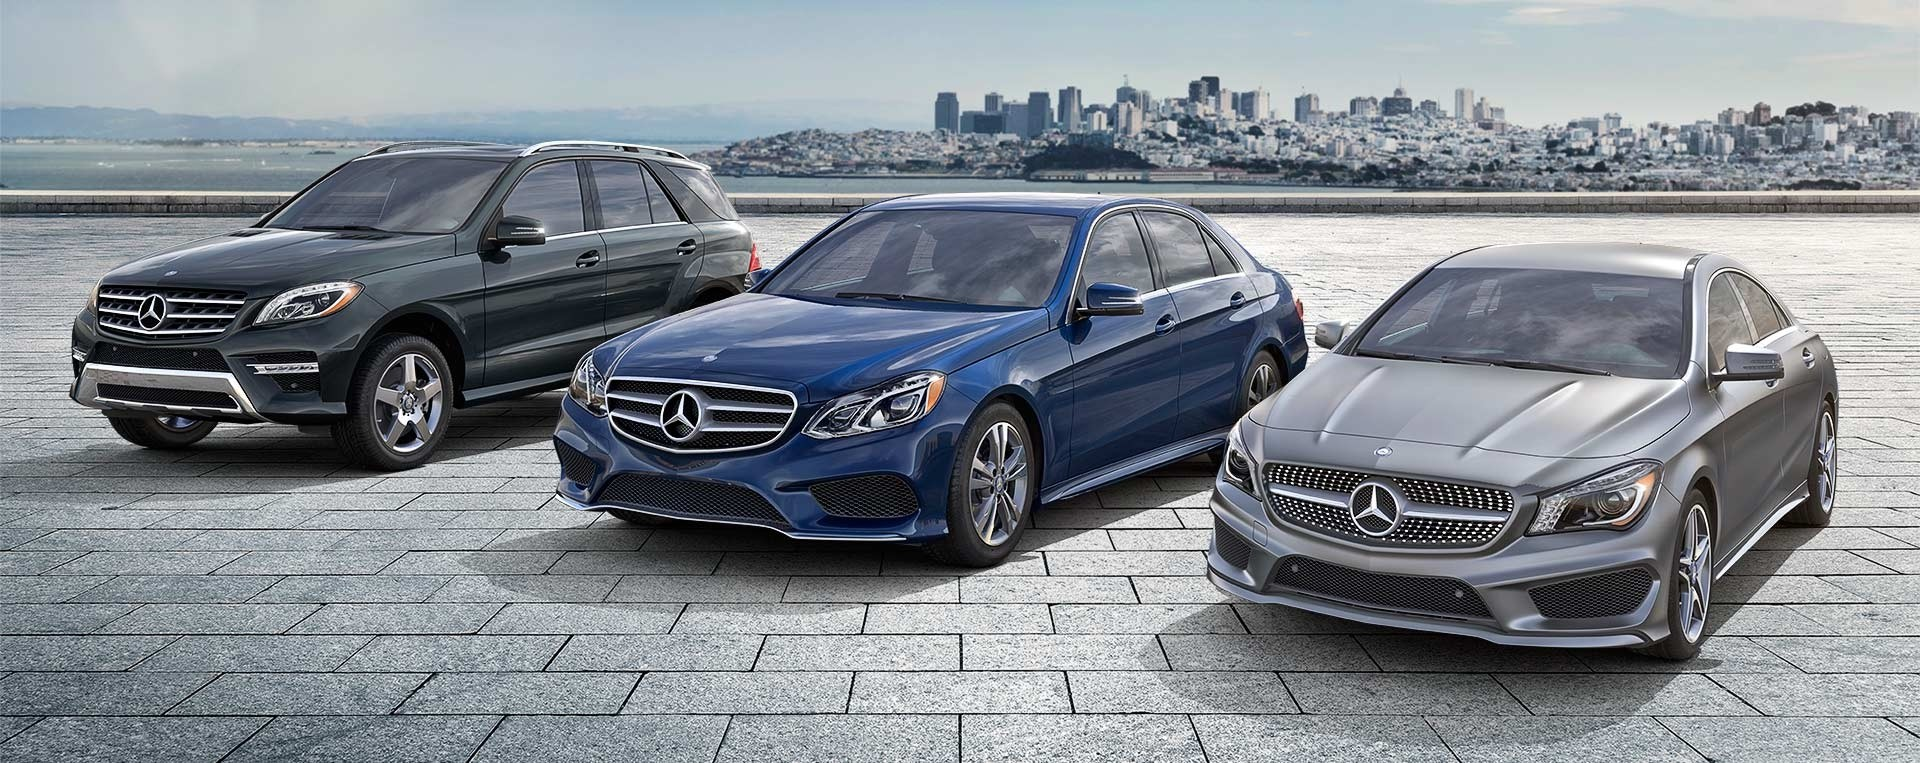 Mercedes benz certified pre owned program vs audi for Mercedes benz certified warranty coverage